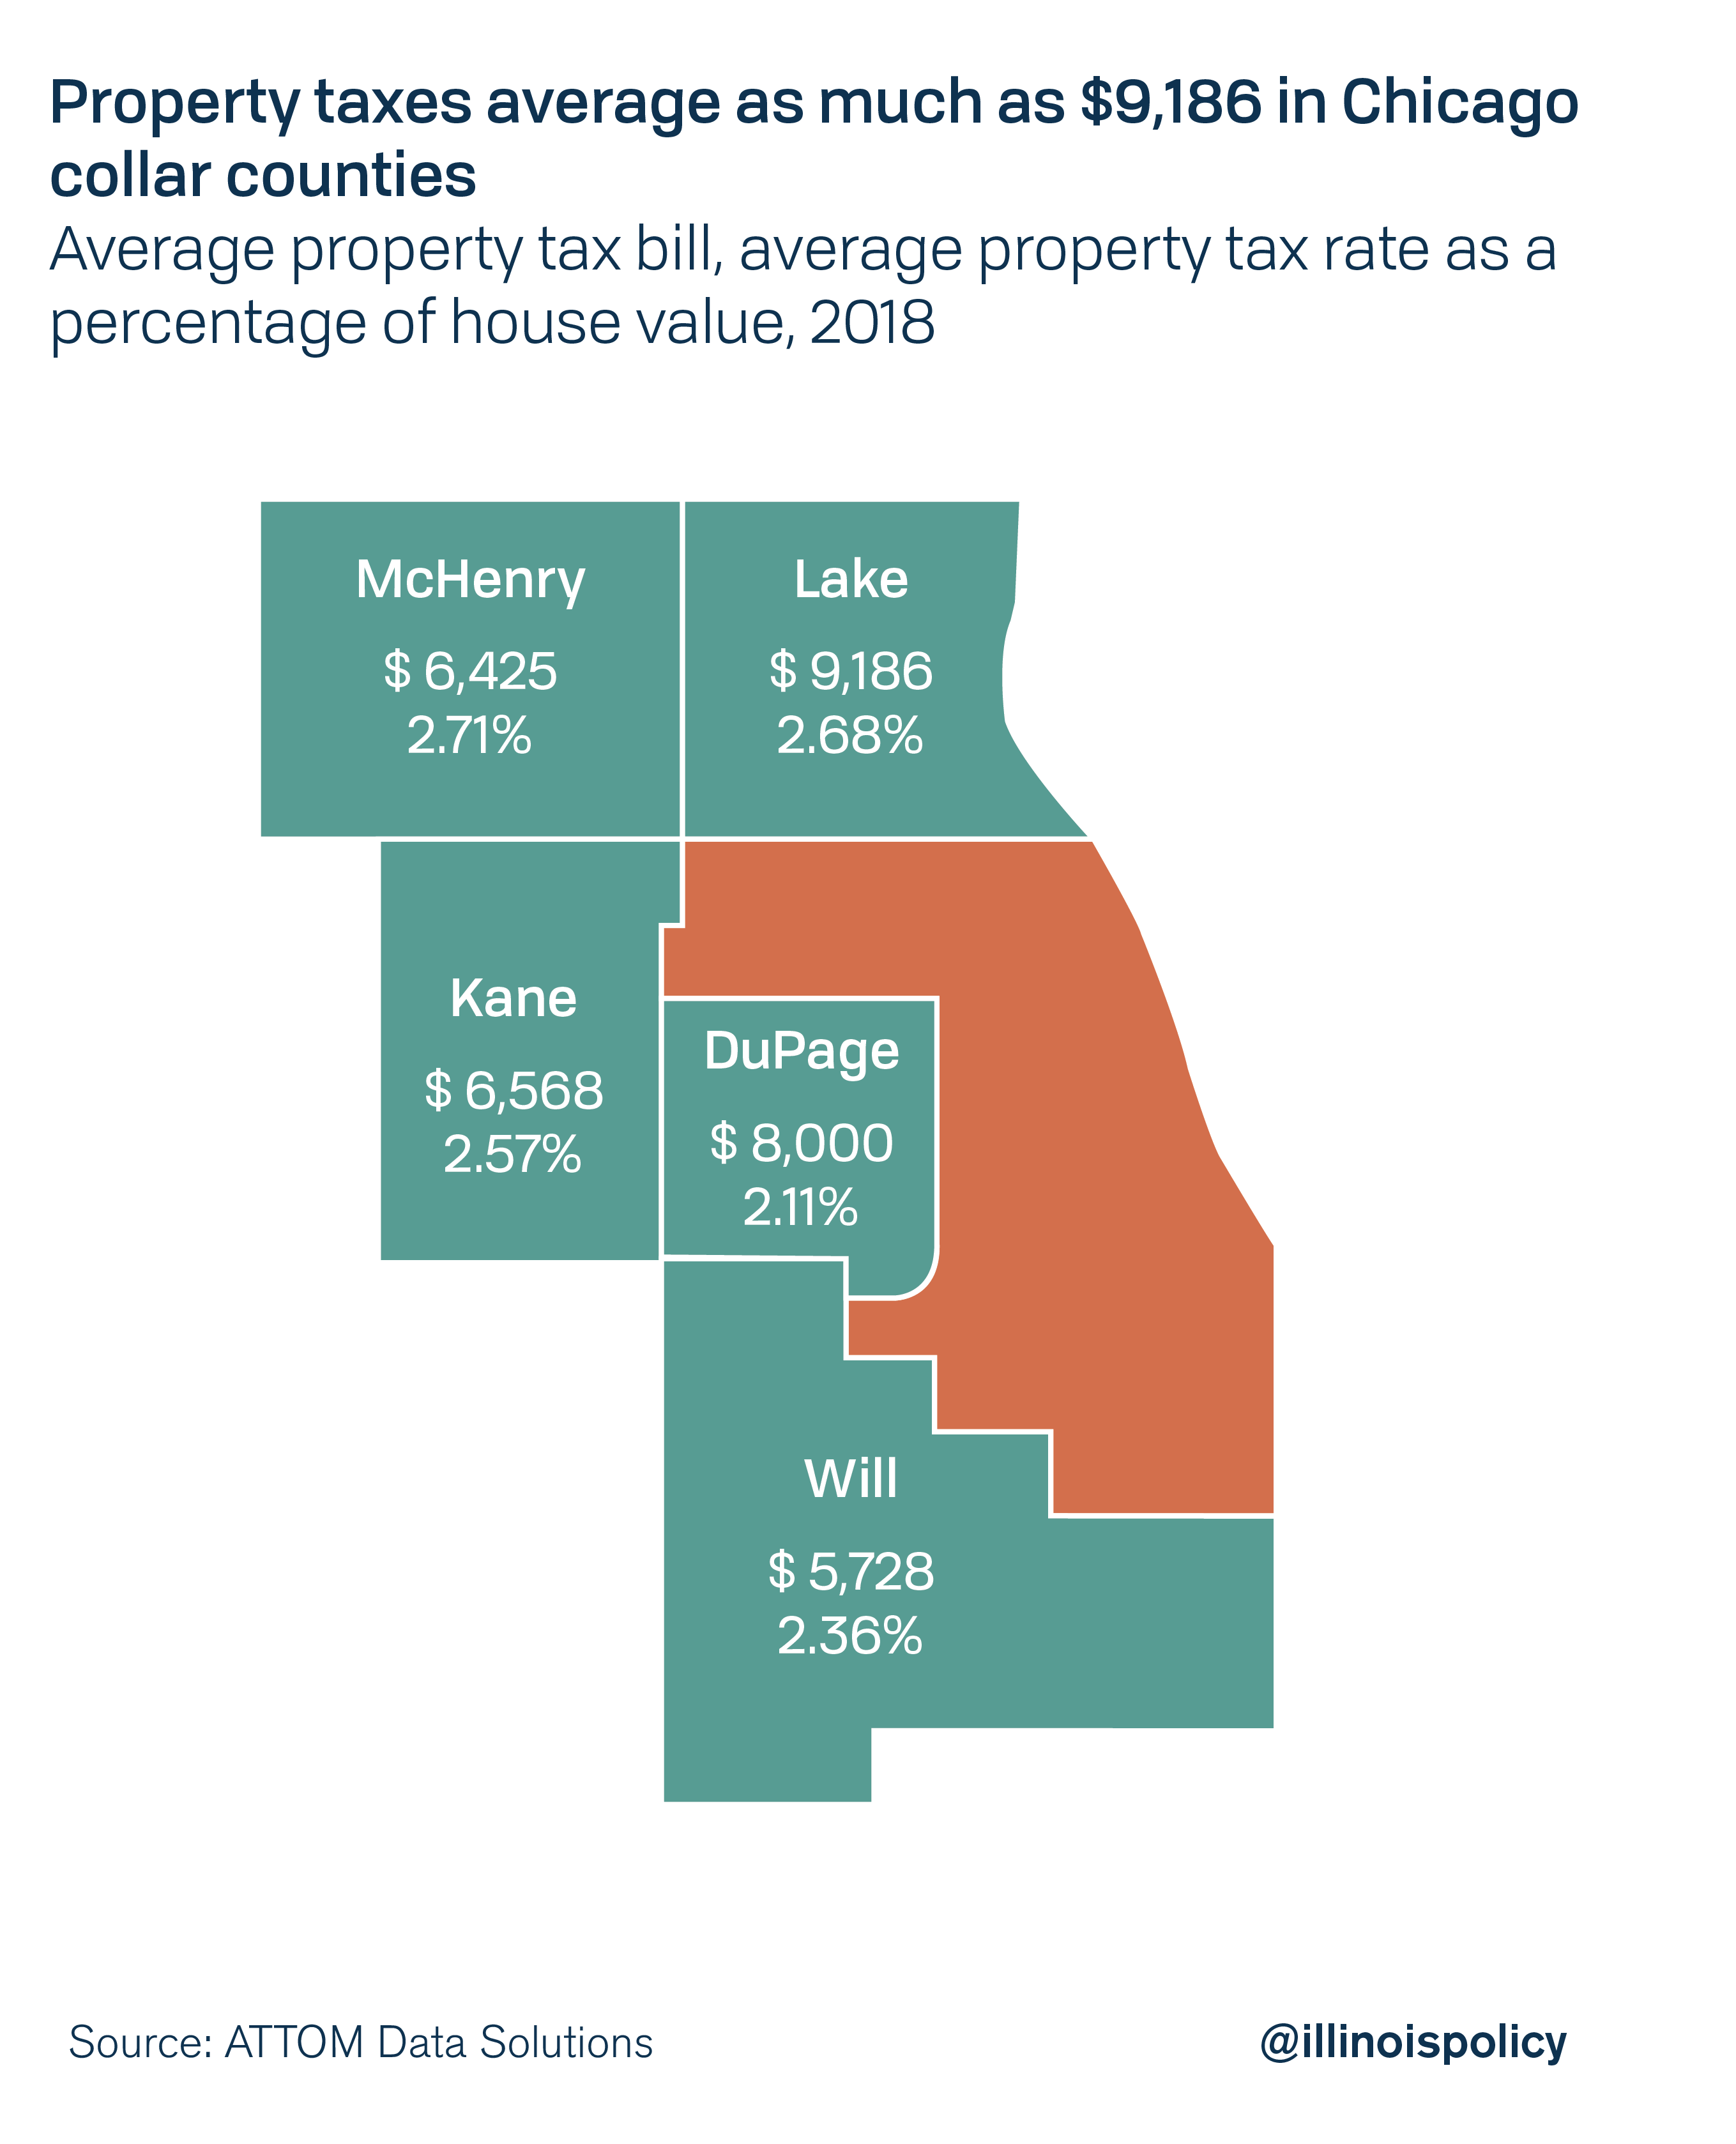 Property taxes average as much as $9,186 in Chicago collar counties